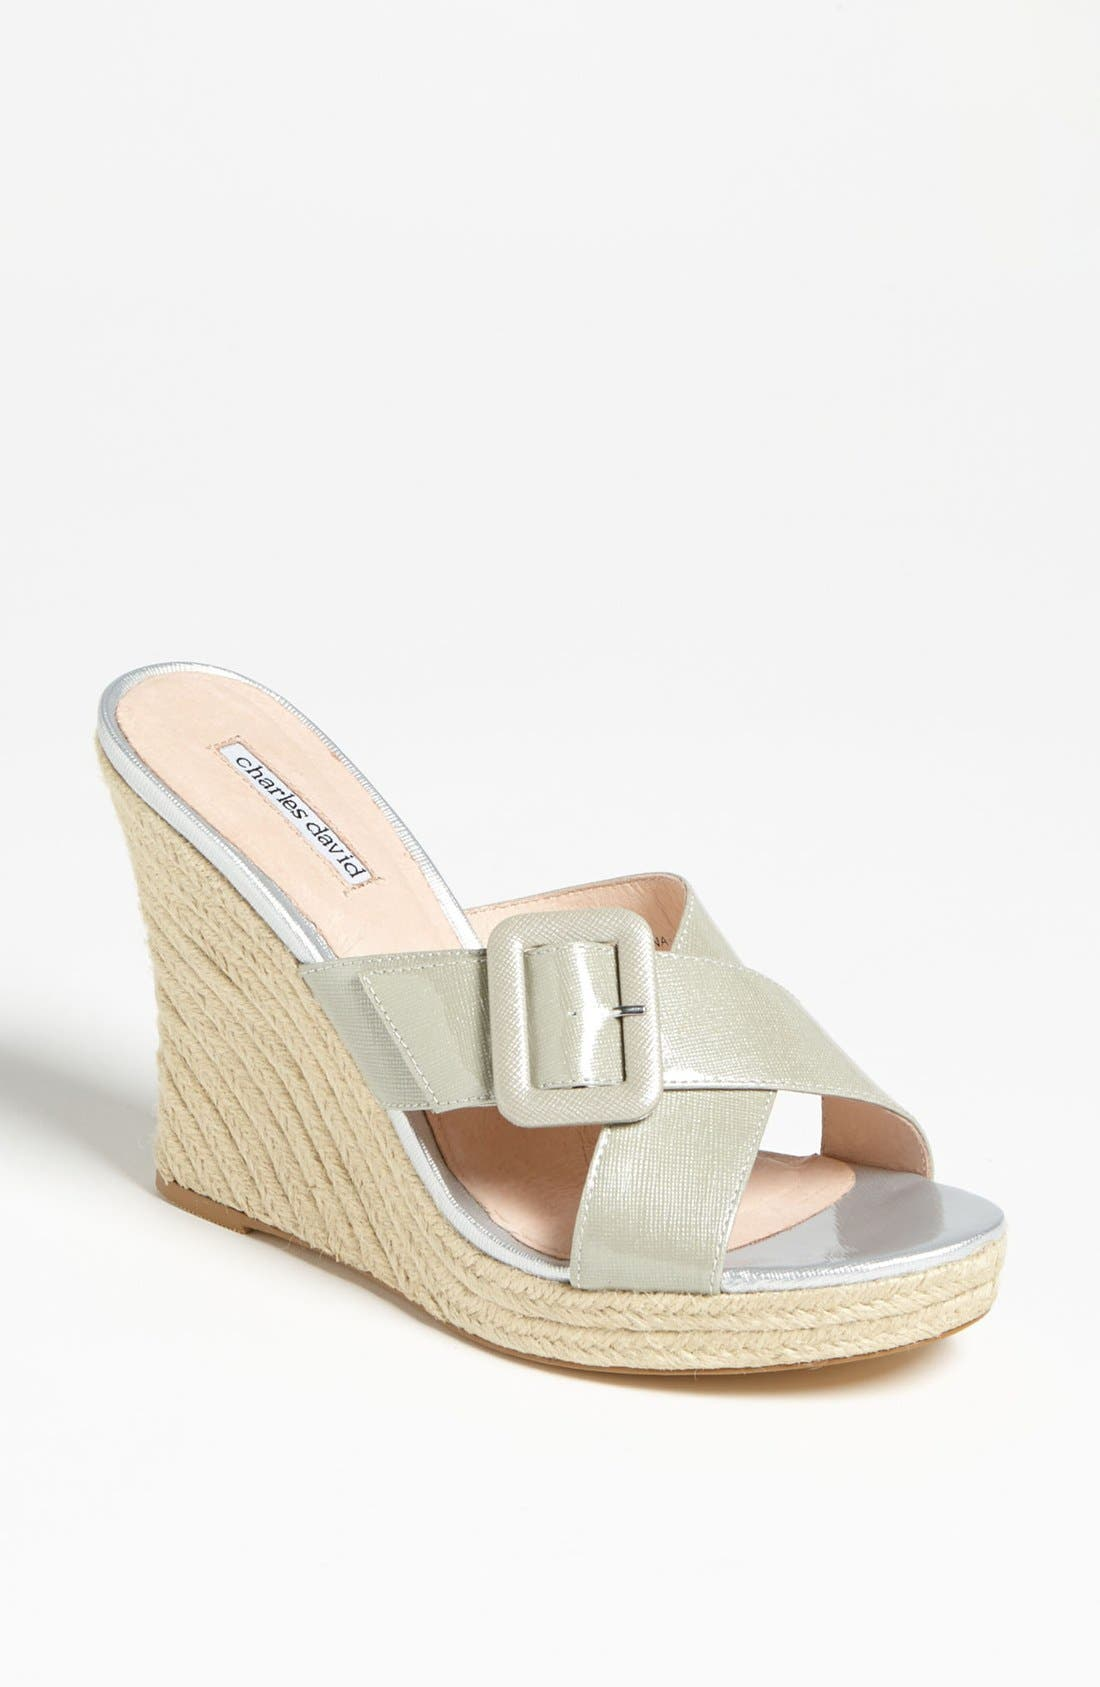 Main Image - Charles David 'Nelly' Wedge Sandal